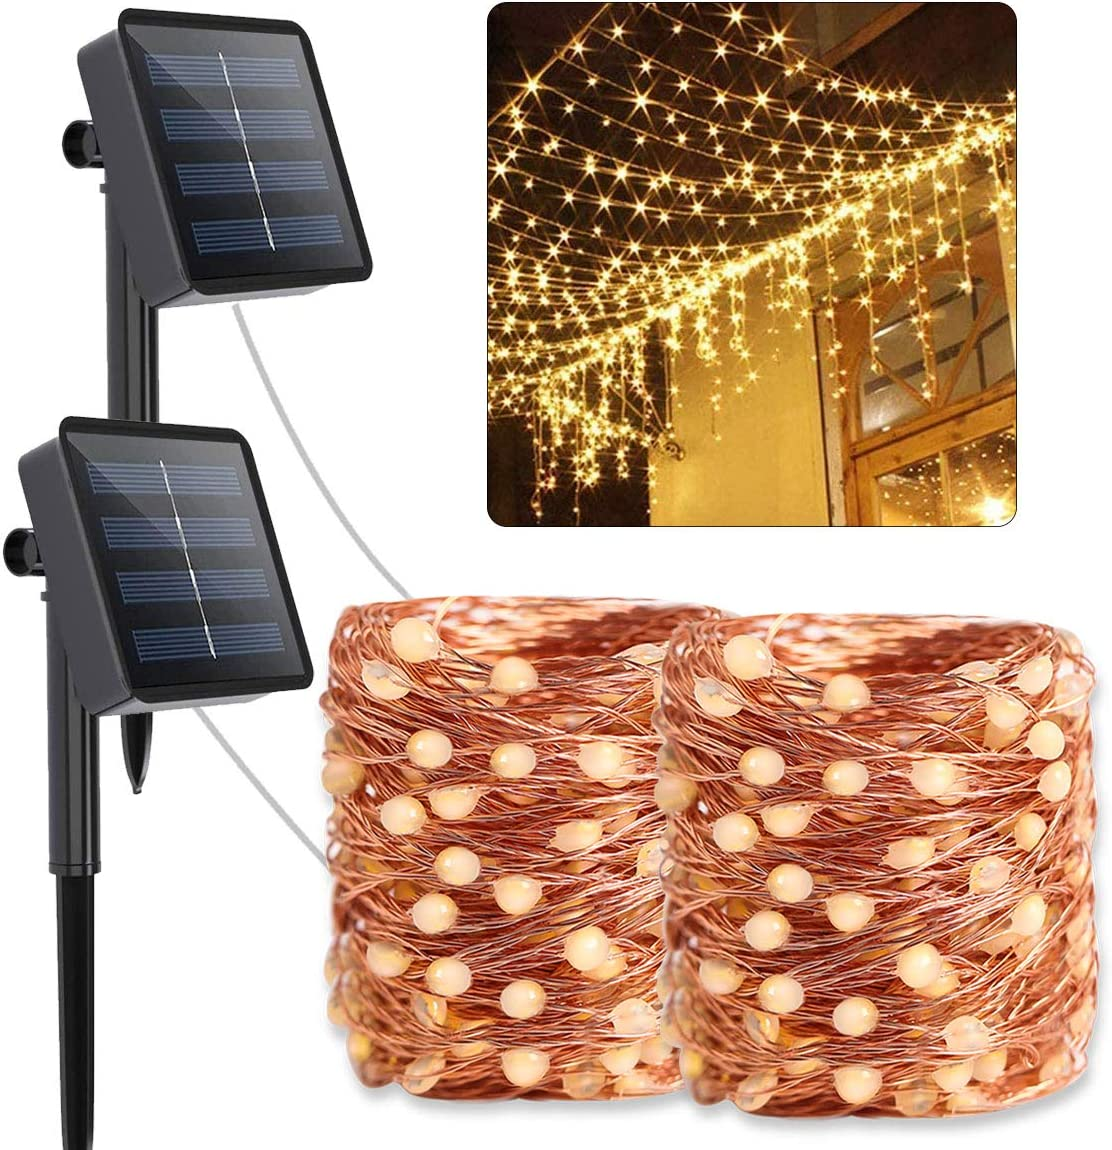 2020 Upgraded Outdoor Solar String Lights Oversize Lamp Beads Ultra-Bright 72ft 200LED , 8 Mode Solar Powered Waterproof Fairy Lights for Patio Garden Yard Party Warm White 2 Pack